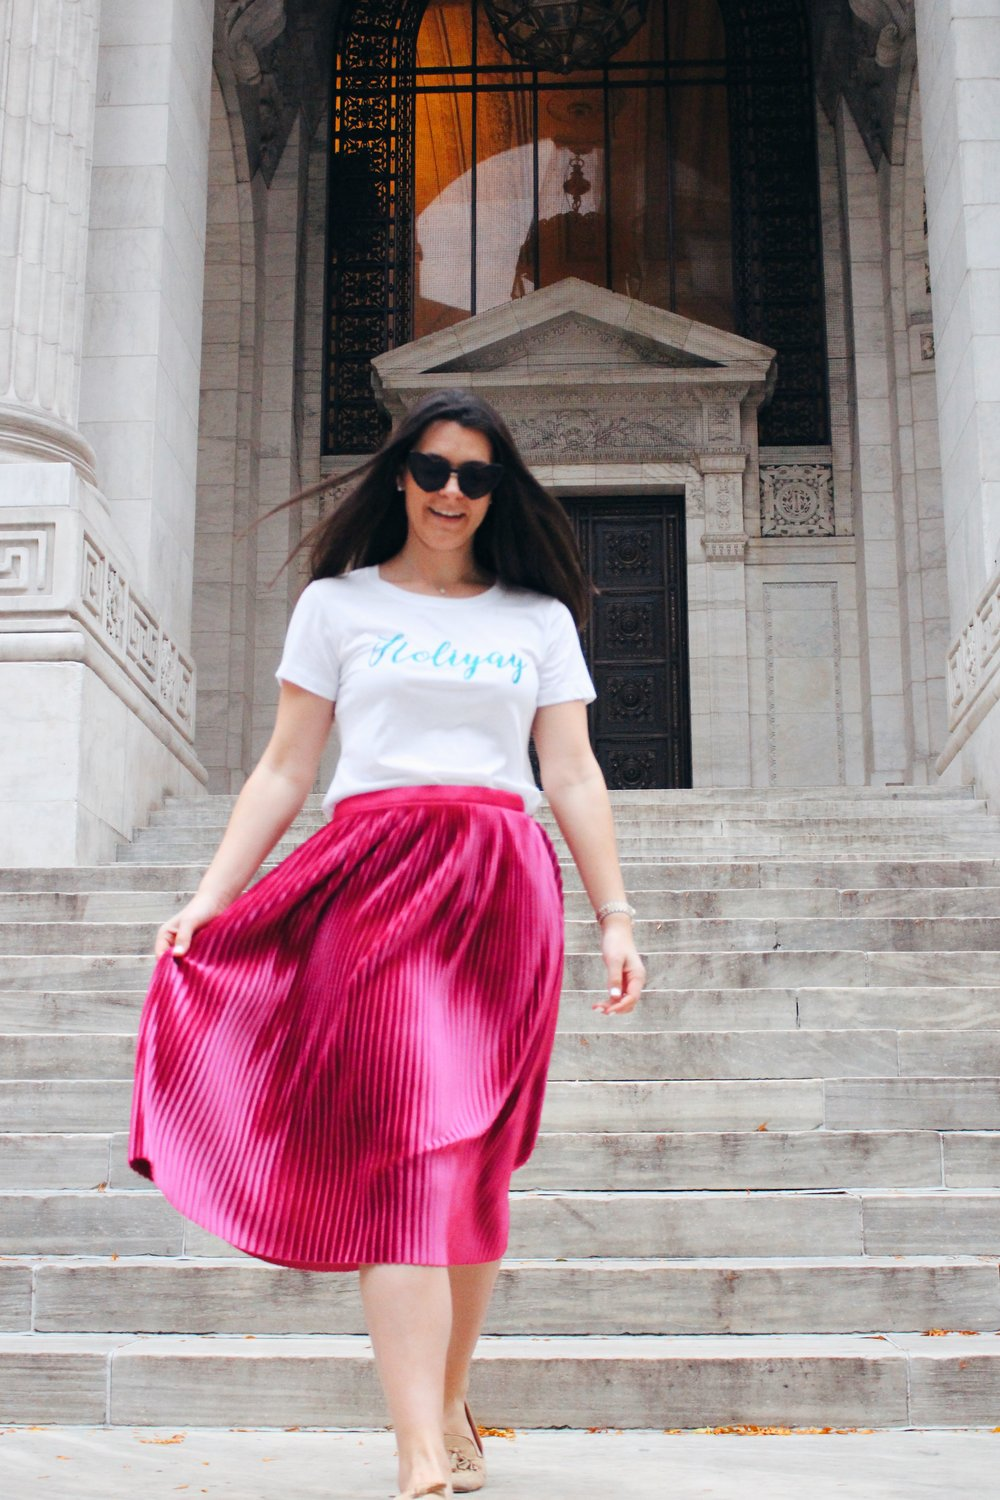 BBxCollection t-shirts  (ask me for a discount code!),  Halogen Pink Pleated Velvet Skirt  ($79),  Scotch & Soda Pink Pleated Skirt  ($125),  Heart sunnies  ($10)